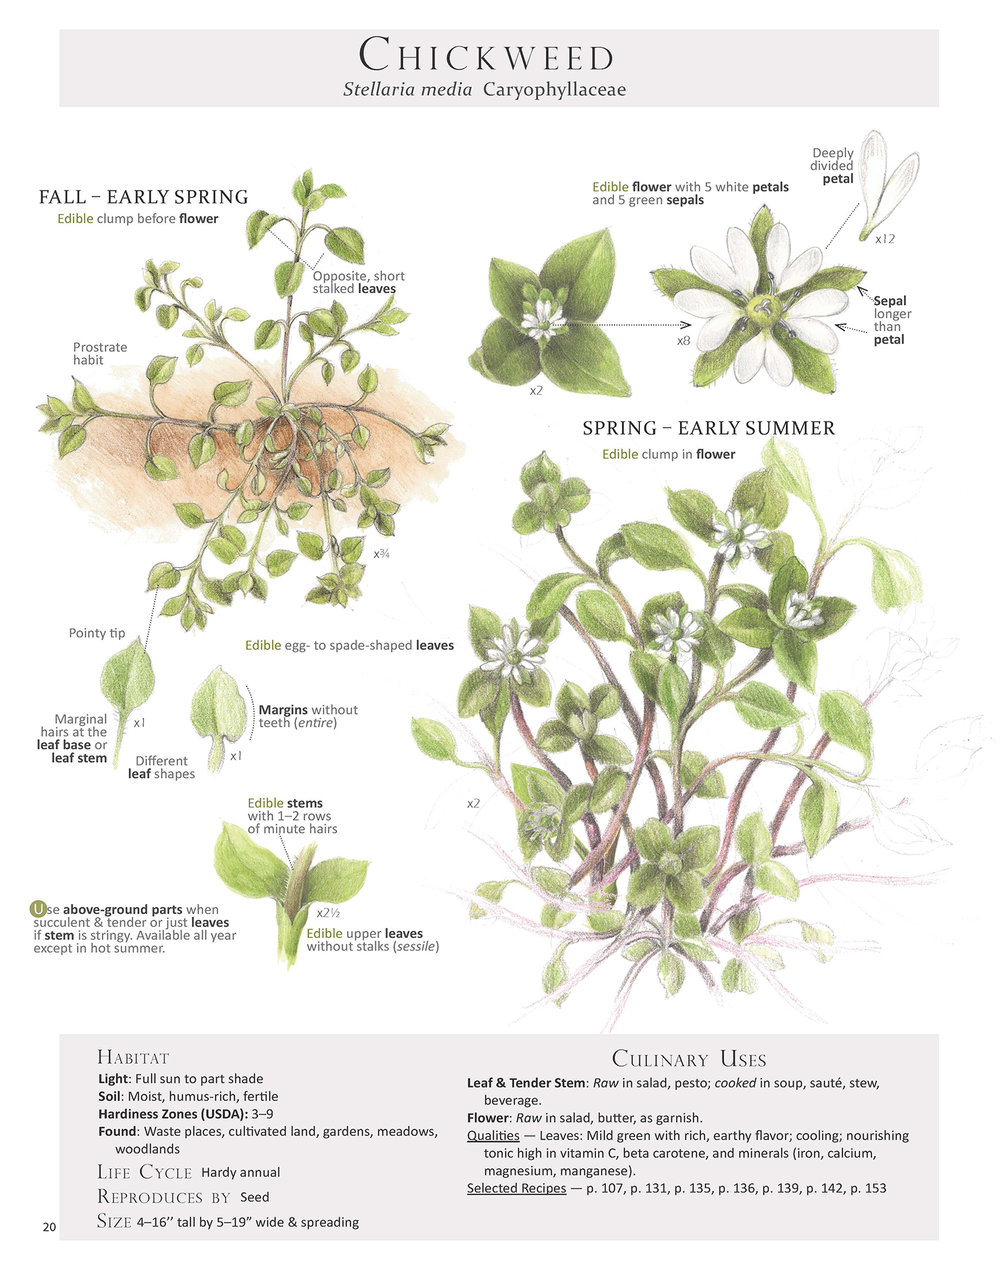 Chickweed Plant Map from Foraging & Feasting: A Field Guide and Wild Food Cookbook by Dina Falconi (me), illustrated by Wendy Hollender. Book link ~ http://bit.ly/1Auh44Q